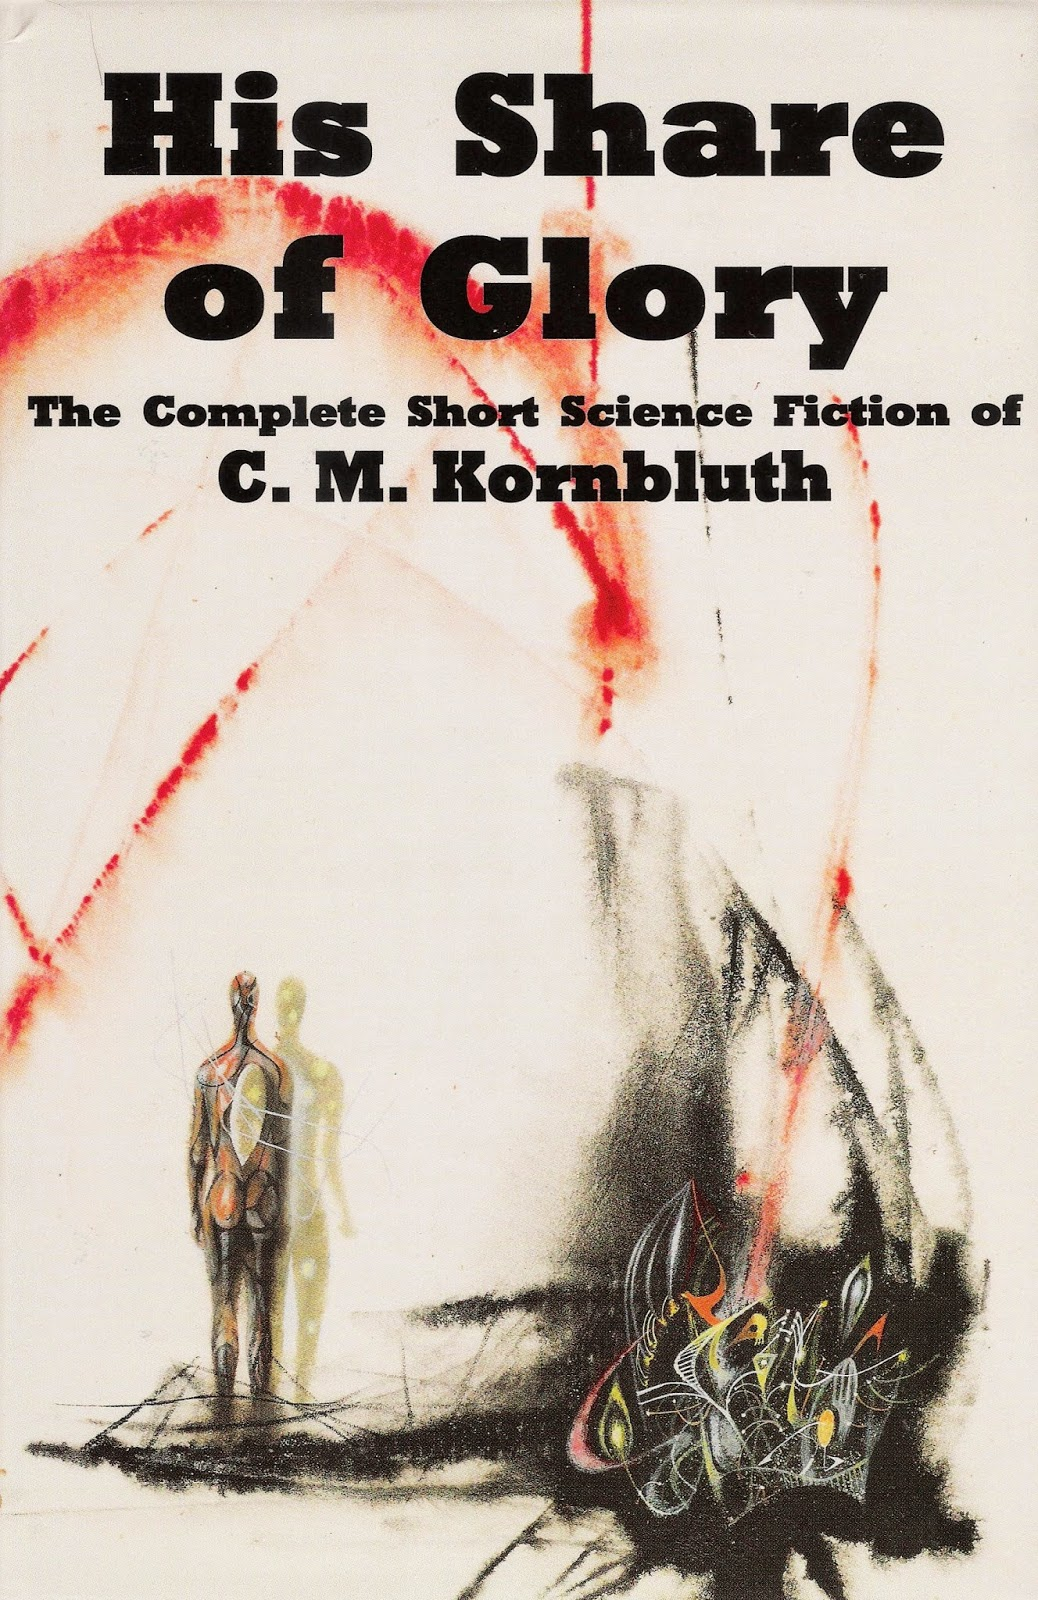 His Share of Glory - The Complete Short Science Fiction of C. M. Kornbluth - KORNBLUTH, C. M.